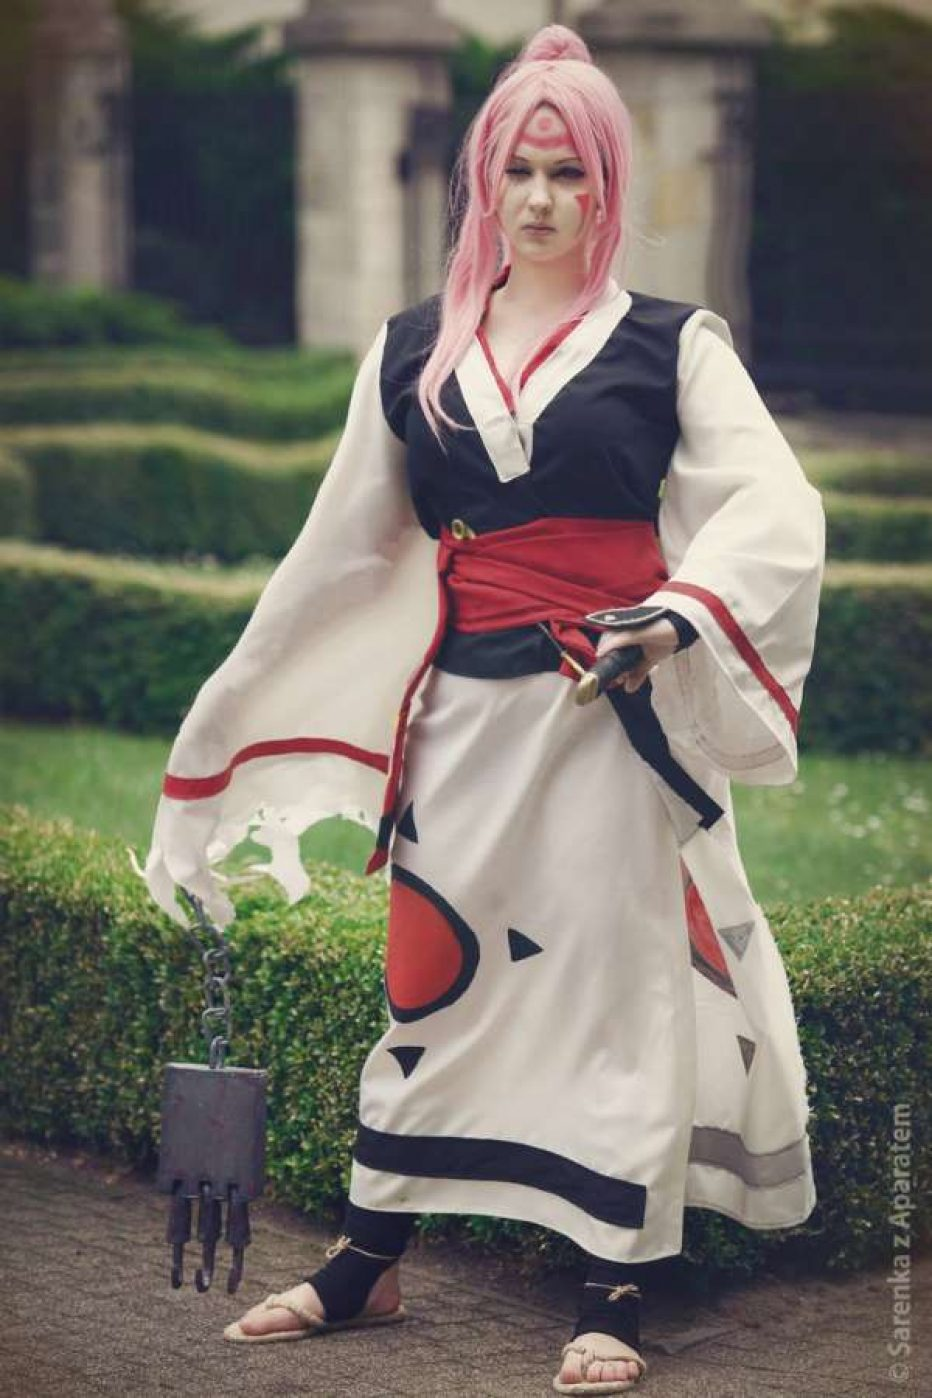 Guilty-Gear-Baiken-Cosplay-Gamers-Heroes-1.jpg